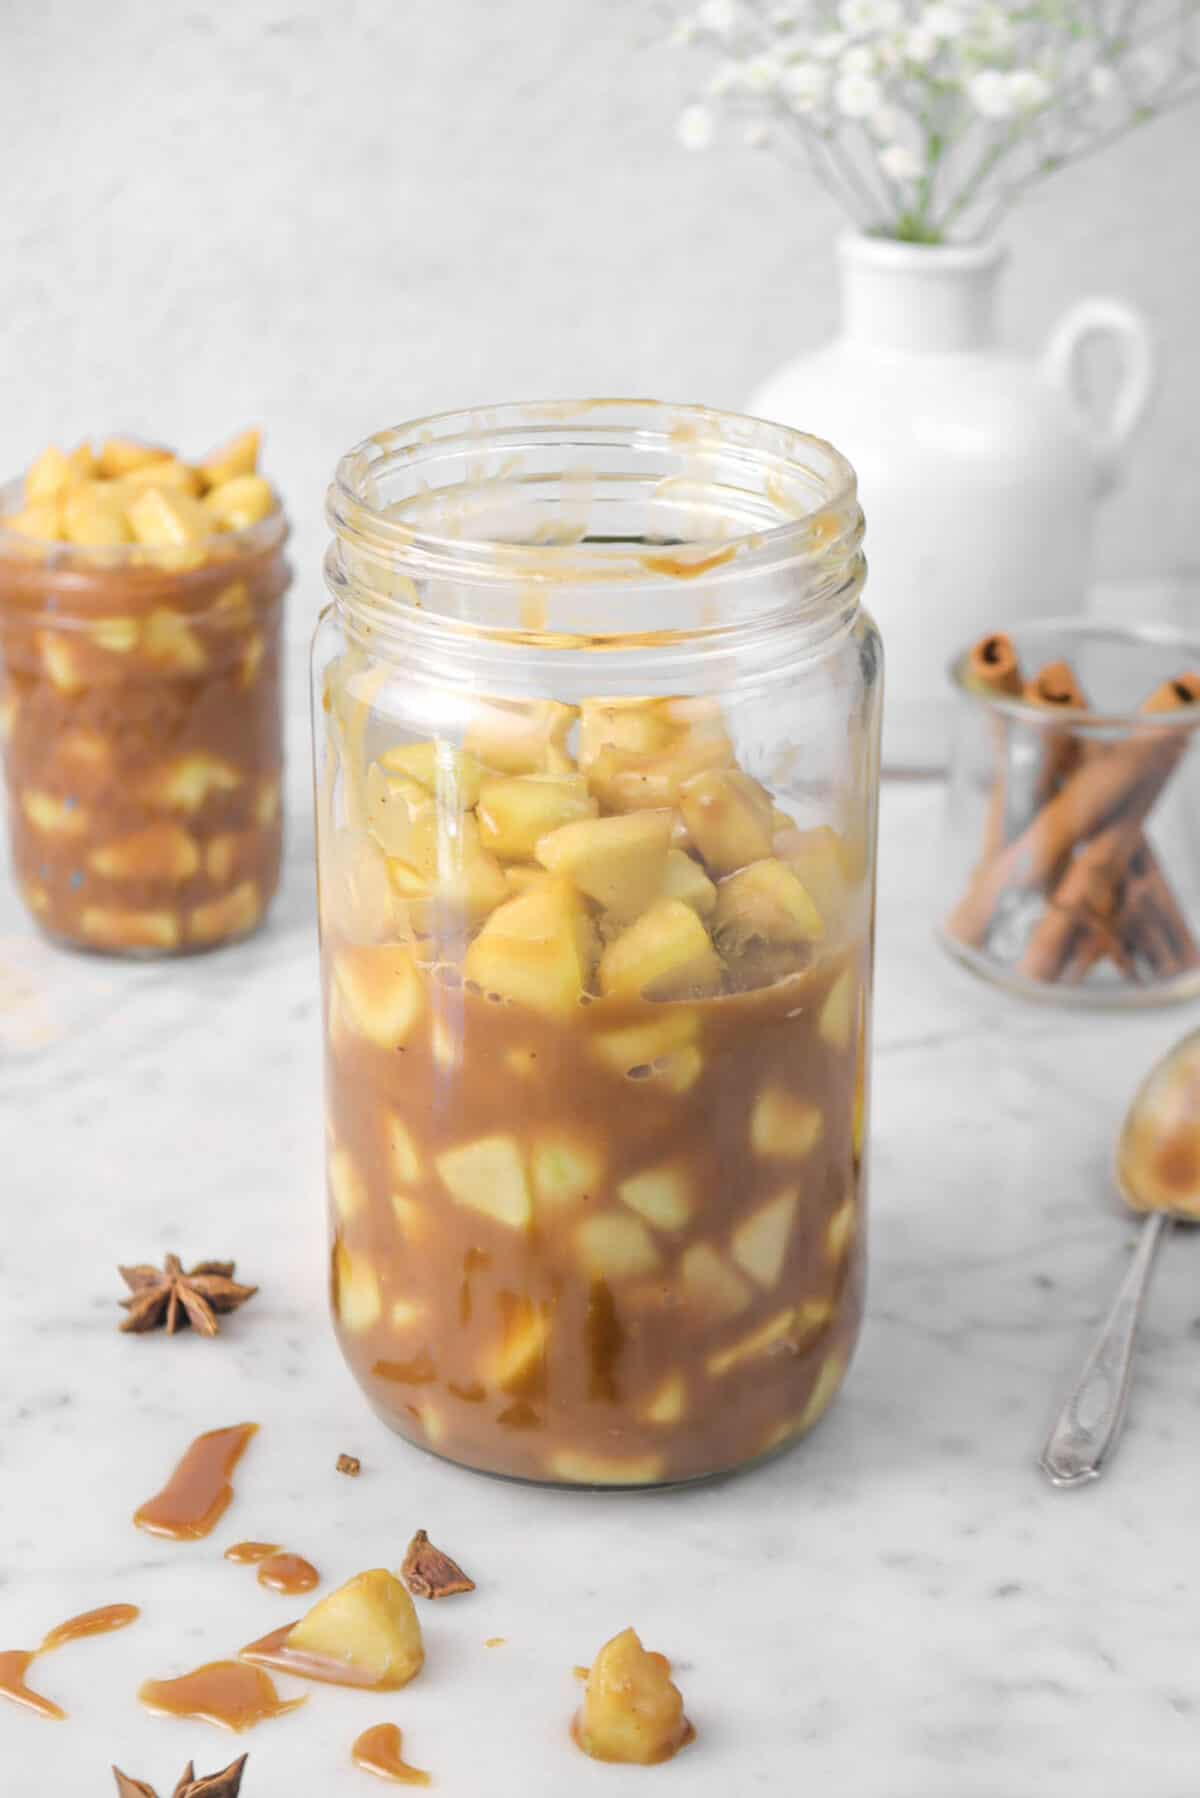 pie filling in a jar on a marble counter with cinnamon sticks and flowers